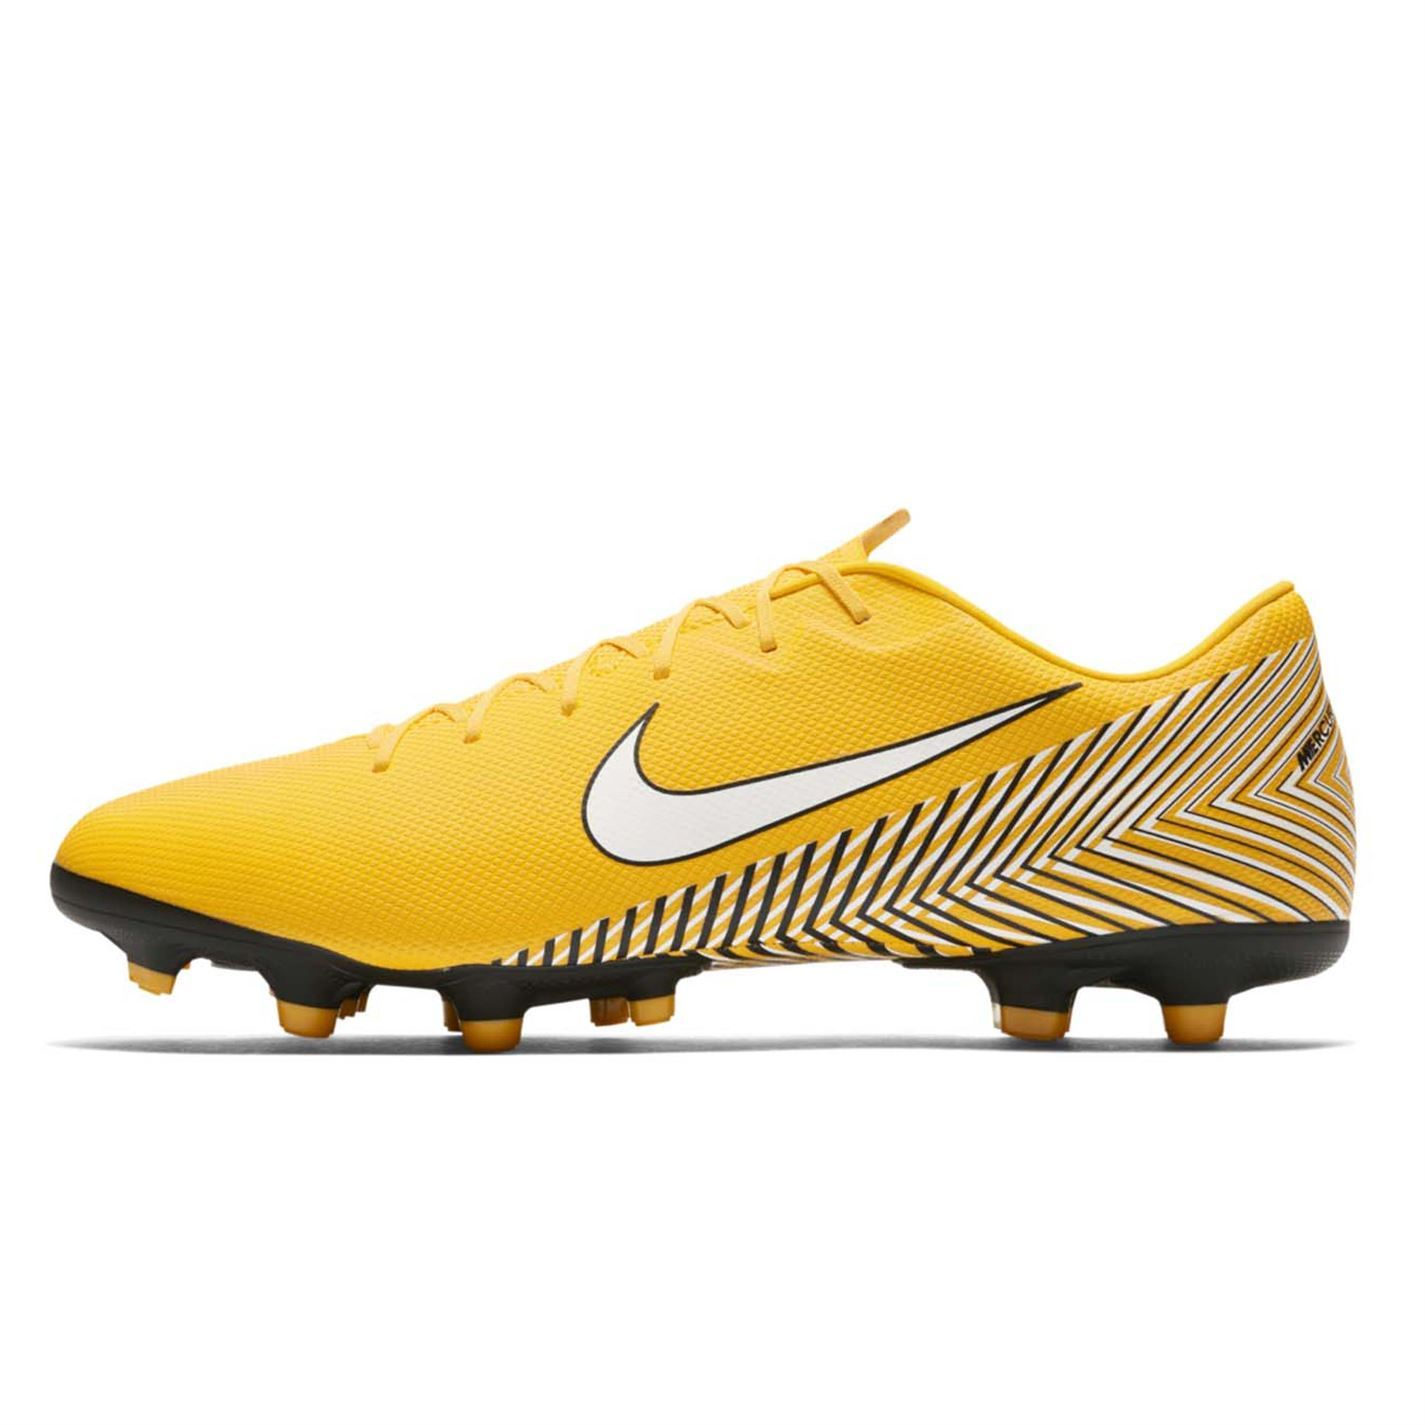 491f31df68e0 ... Nike Mercurial Vapor Academy Neymar FG Football Boots Mens Yellow  Soccer Cleats ...